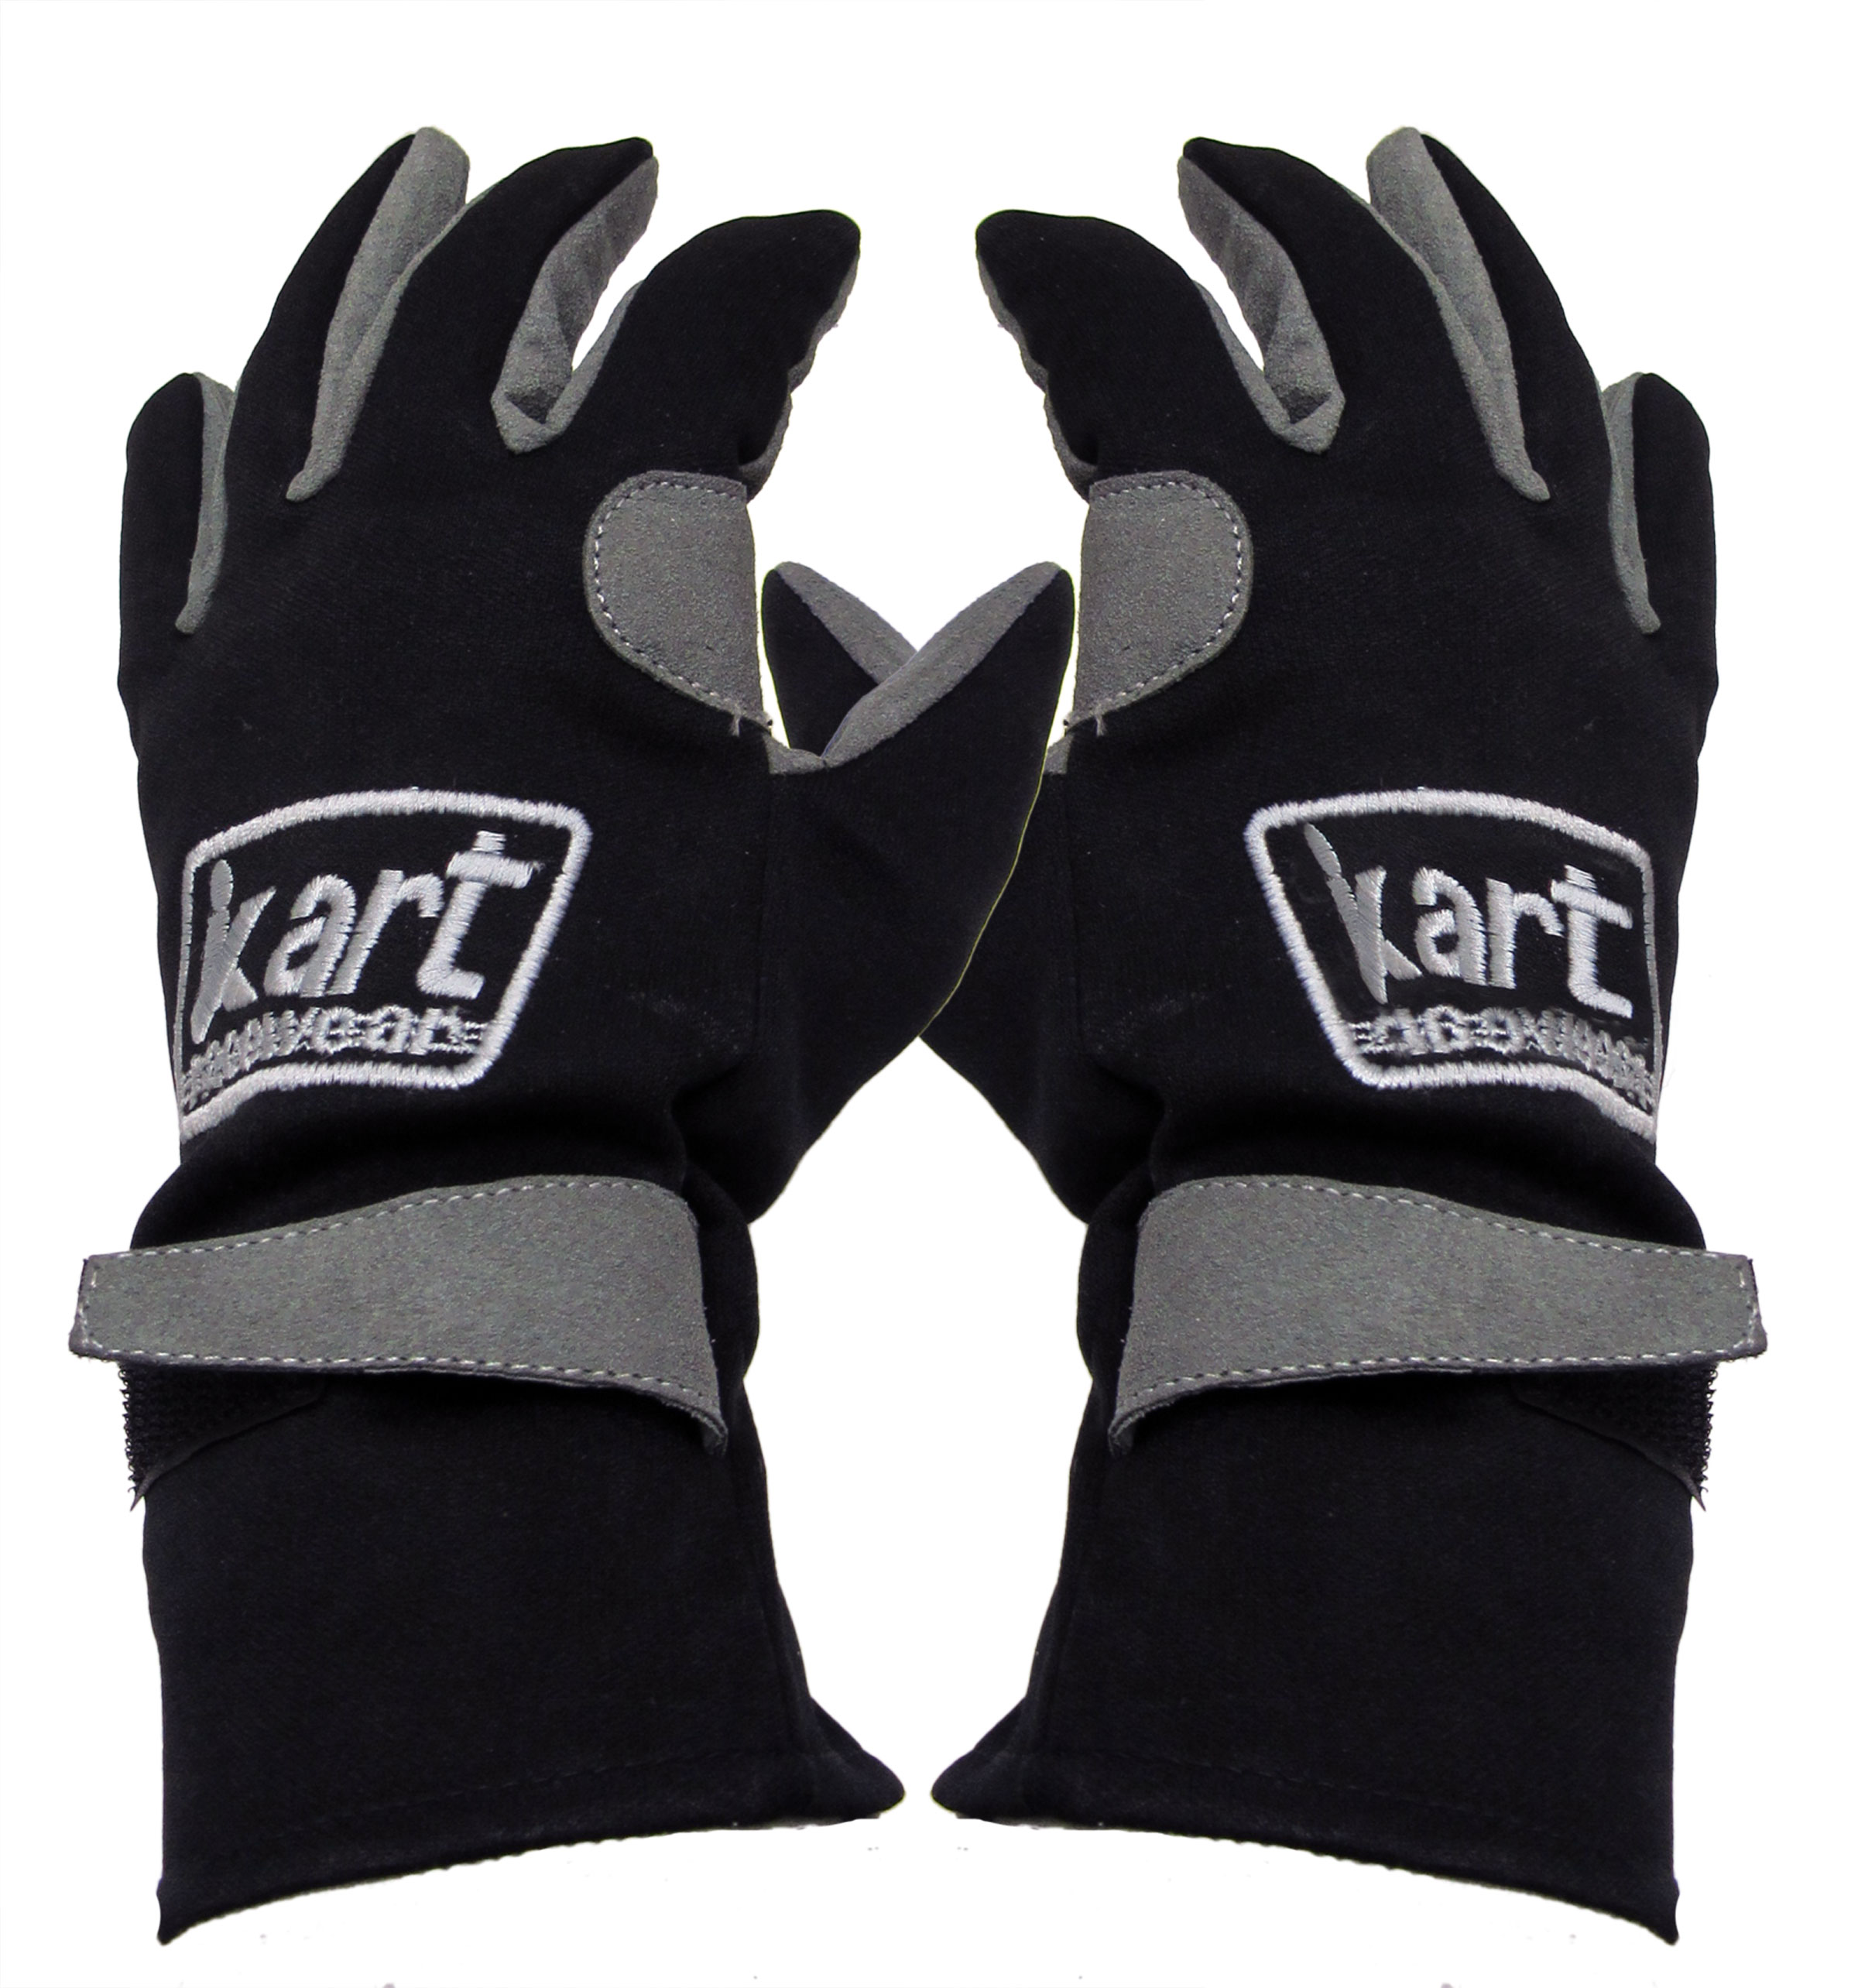 25156391e5 Kart Racewear 200 Series Gloves | LE200 | BMI Karts And Parts